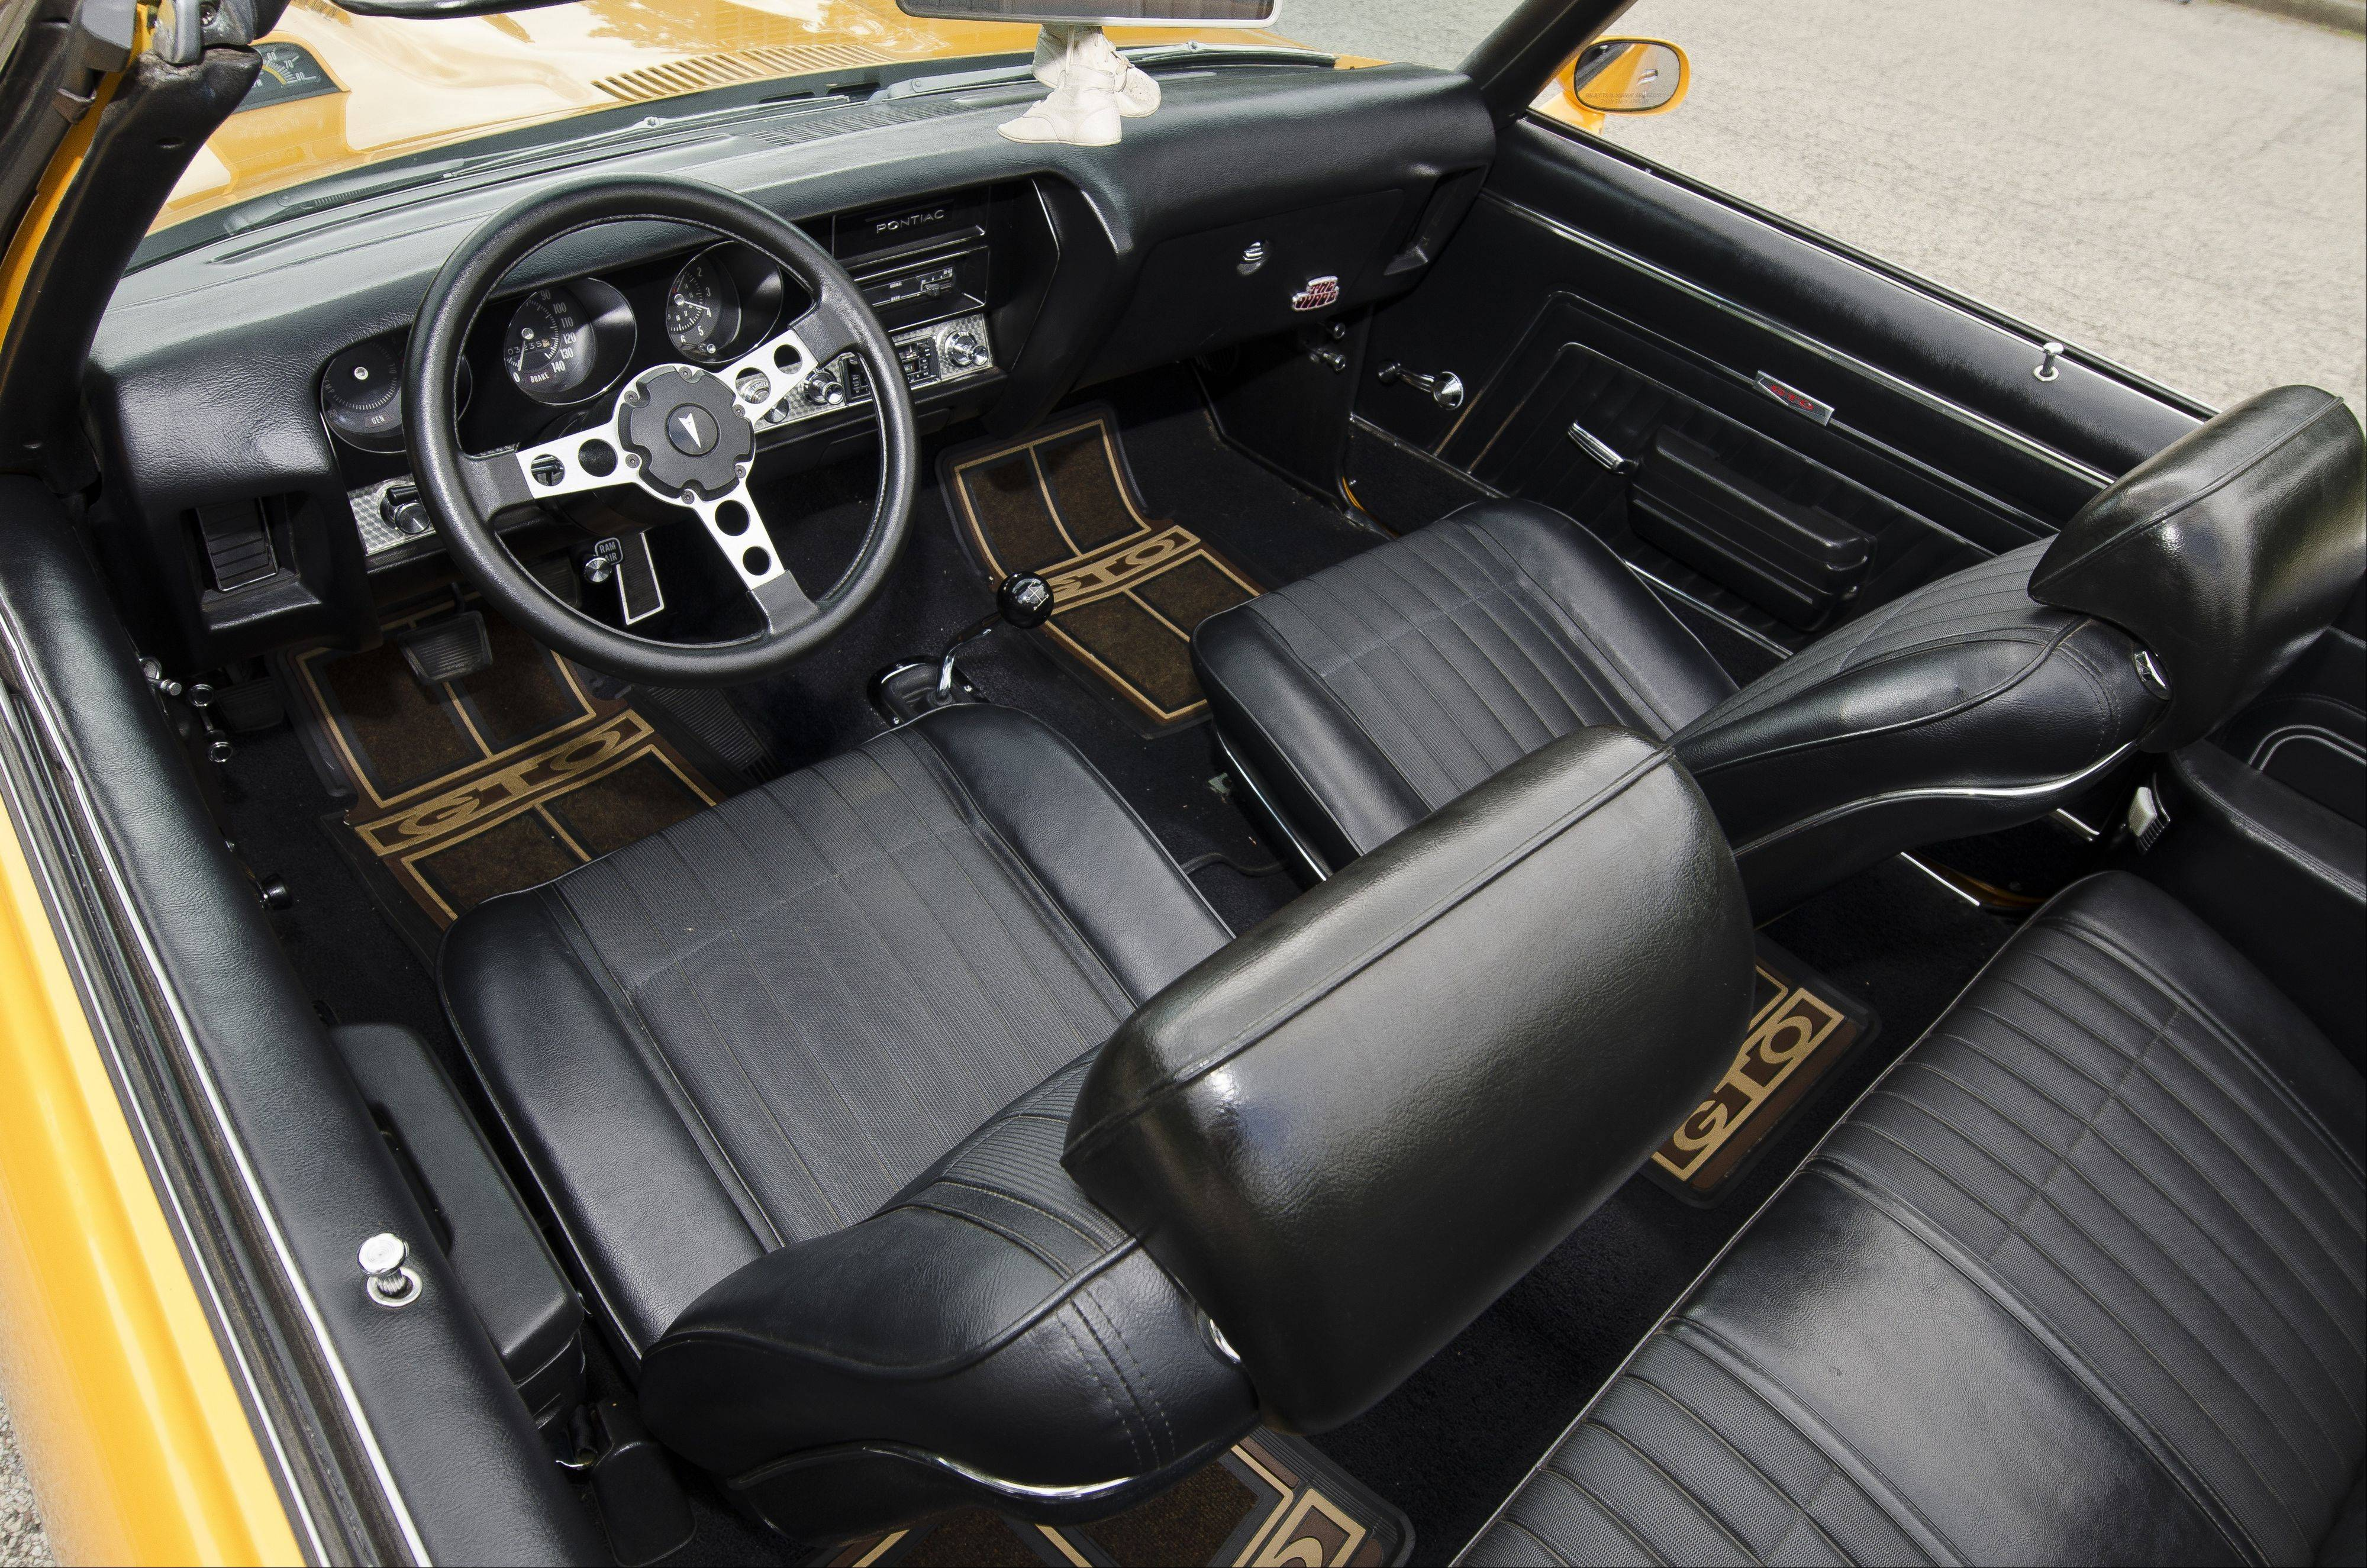 The Black Leather Interior Completes This Classic Rebuild.